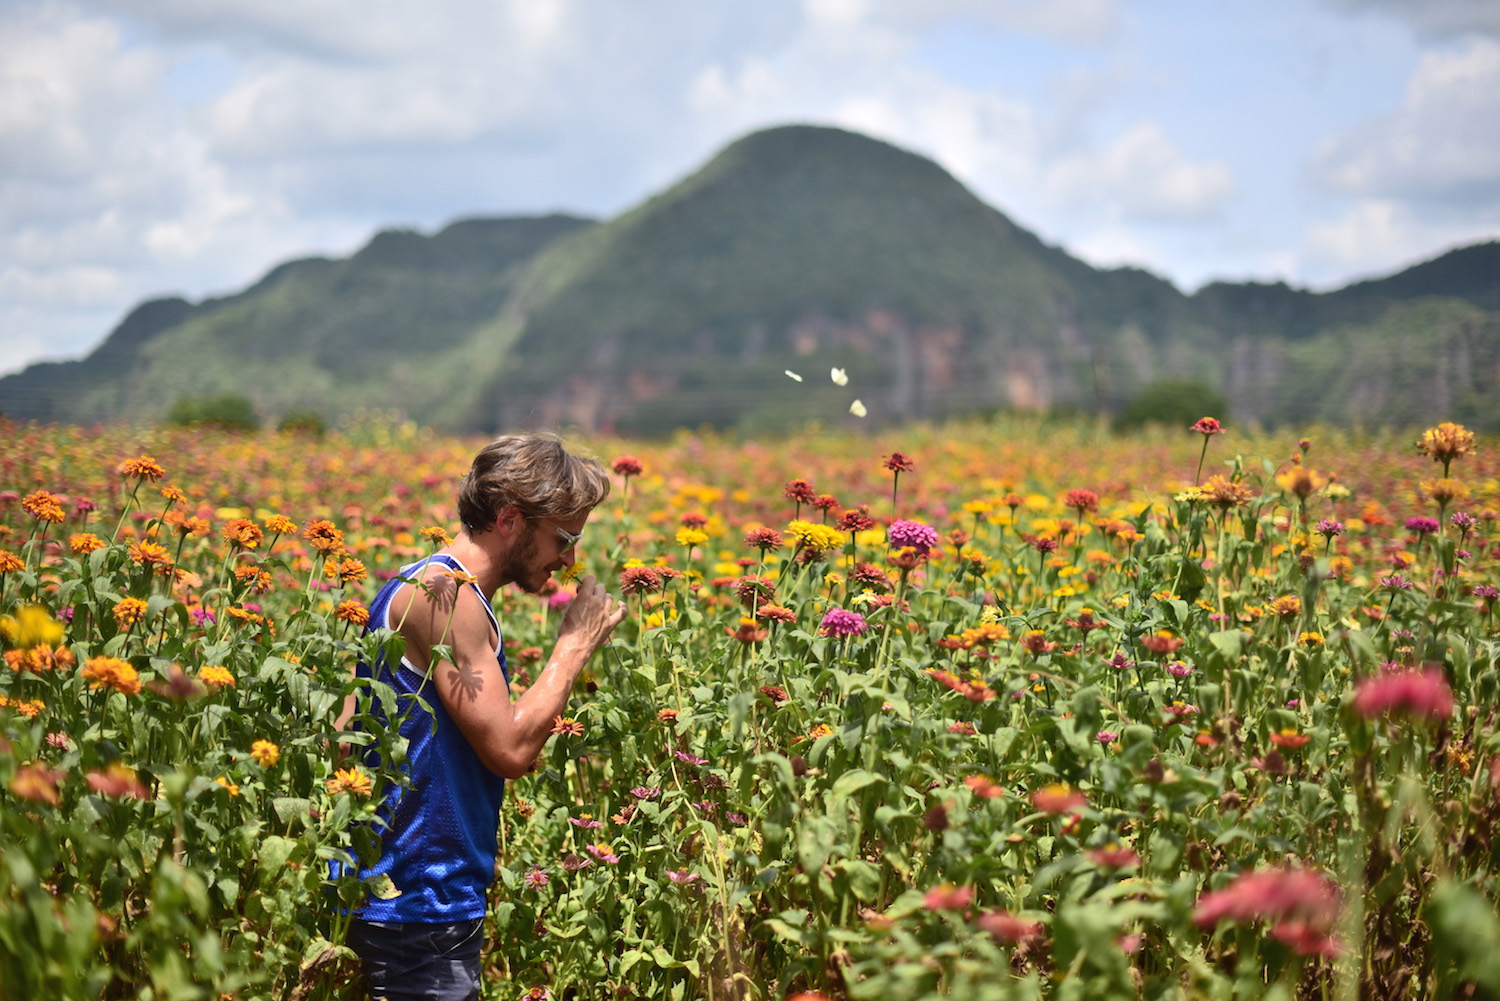 Cuba travel pictures frolicking in field of flowers